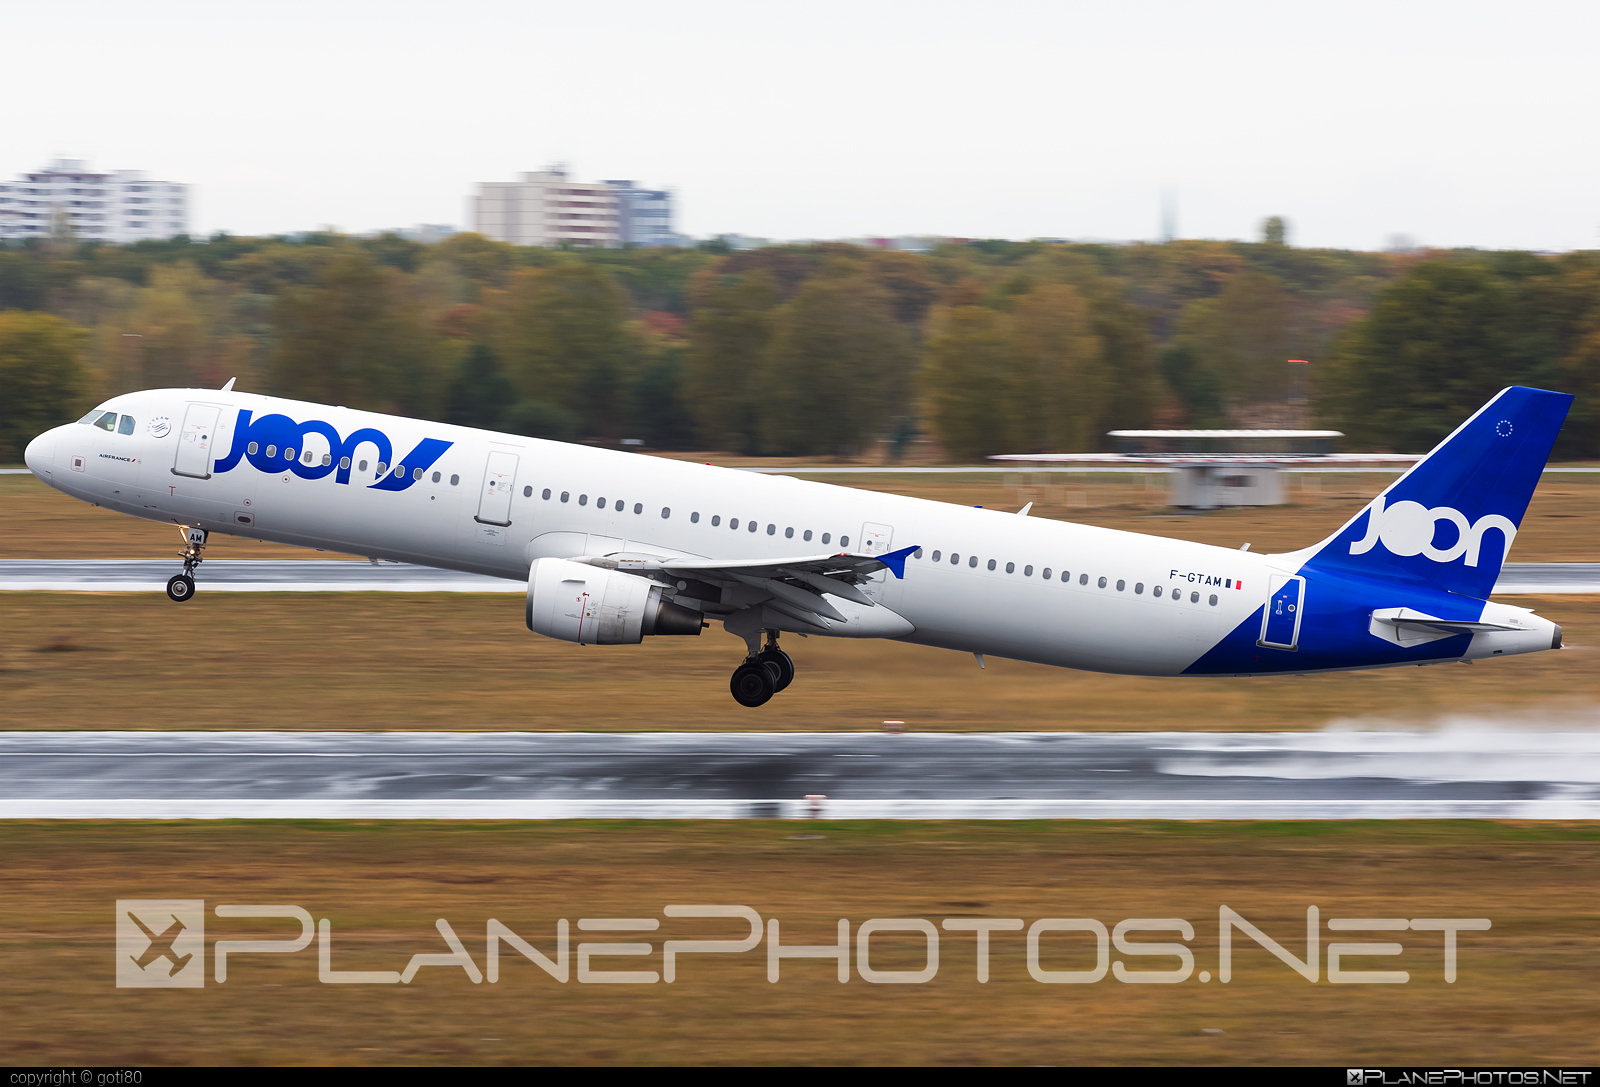 Airbus A321-211 - F-GTAM operated by Joon #a320family #a321 #airbus #airbus321 #joon